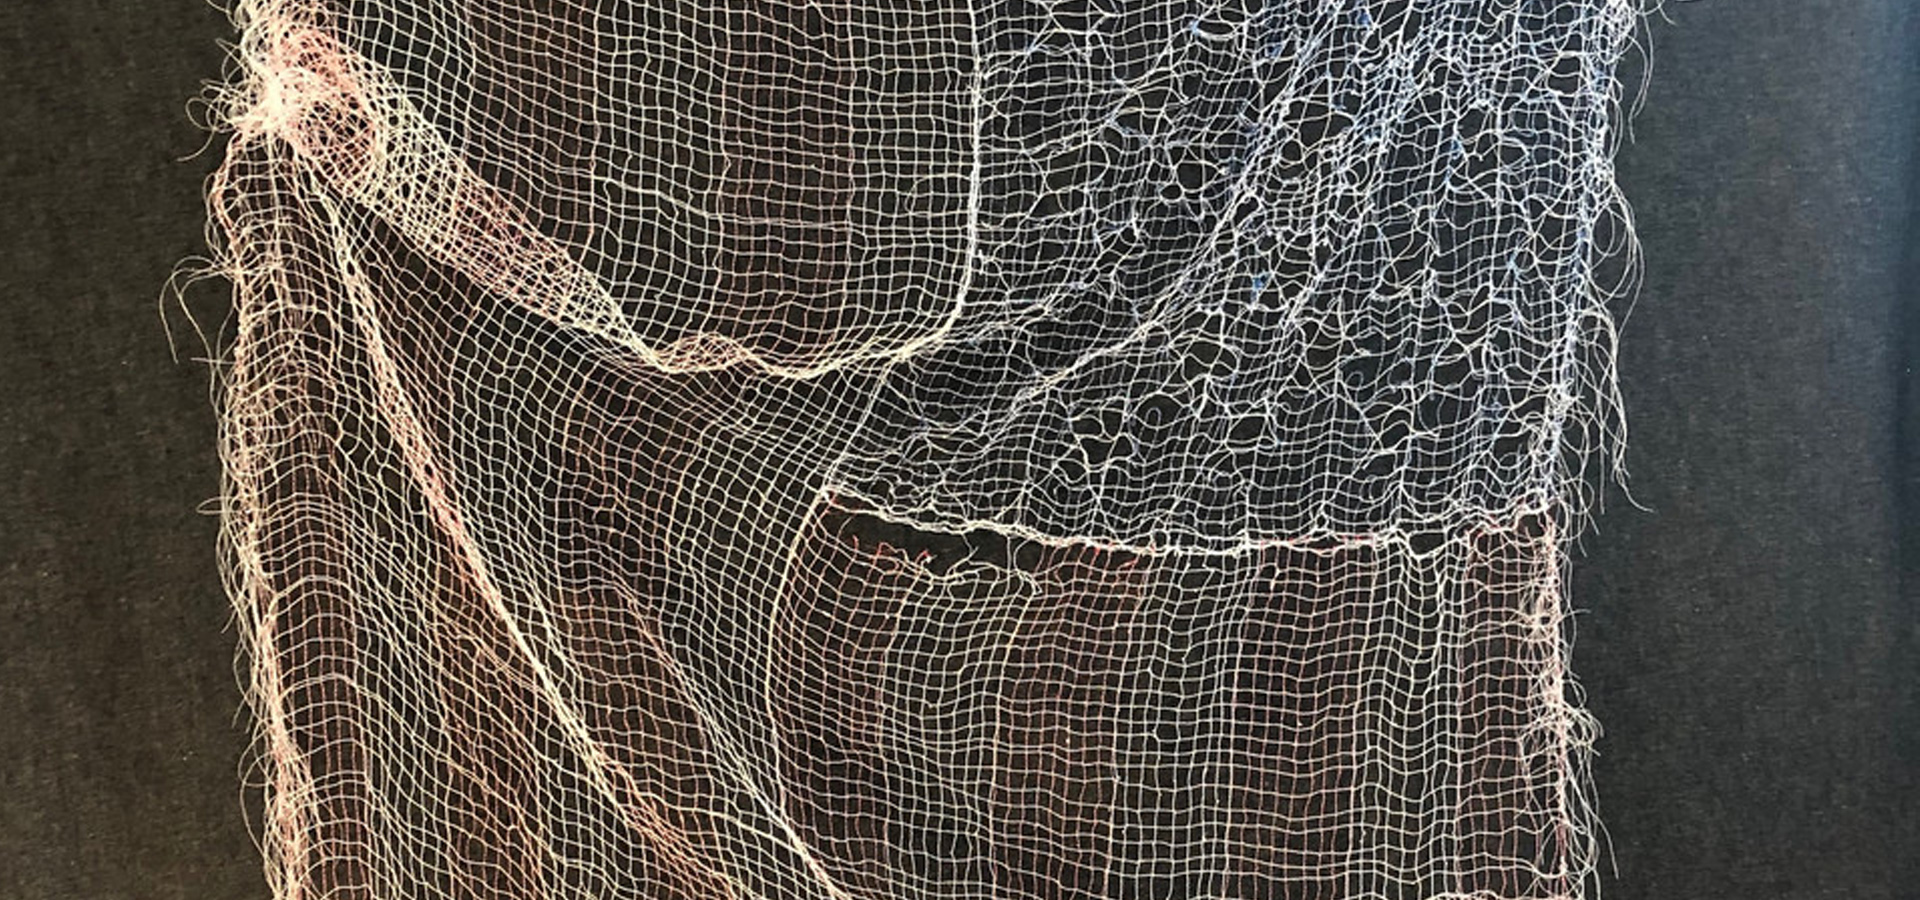 thread sewn on soluble substrate; dissolved